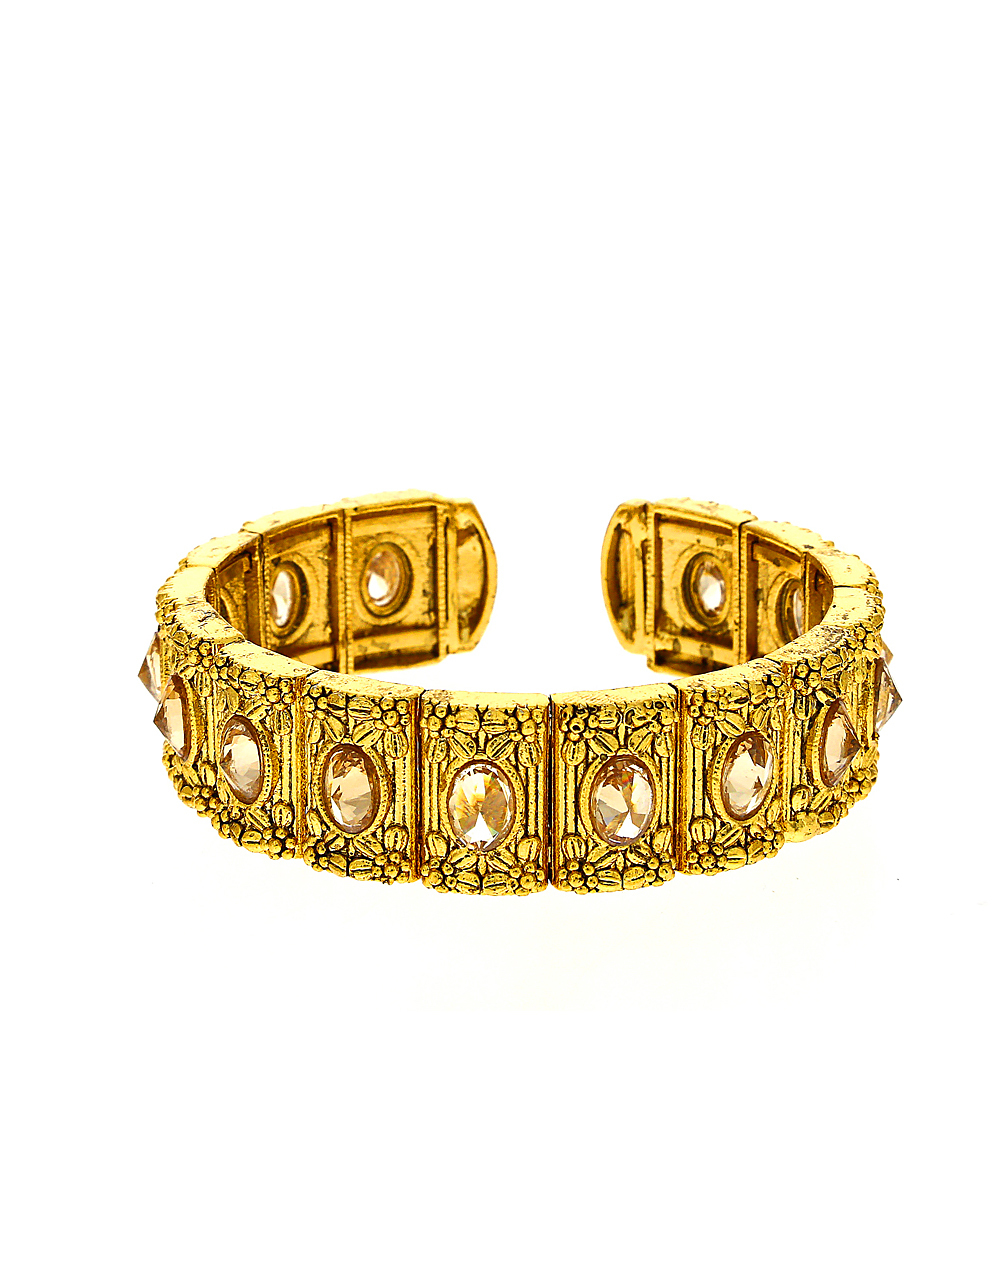 Lct Stones Studded Fancy Bracelet Set For Women In Gild Finish Classy And Elegant